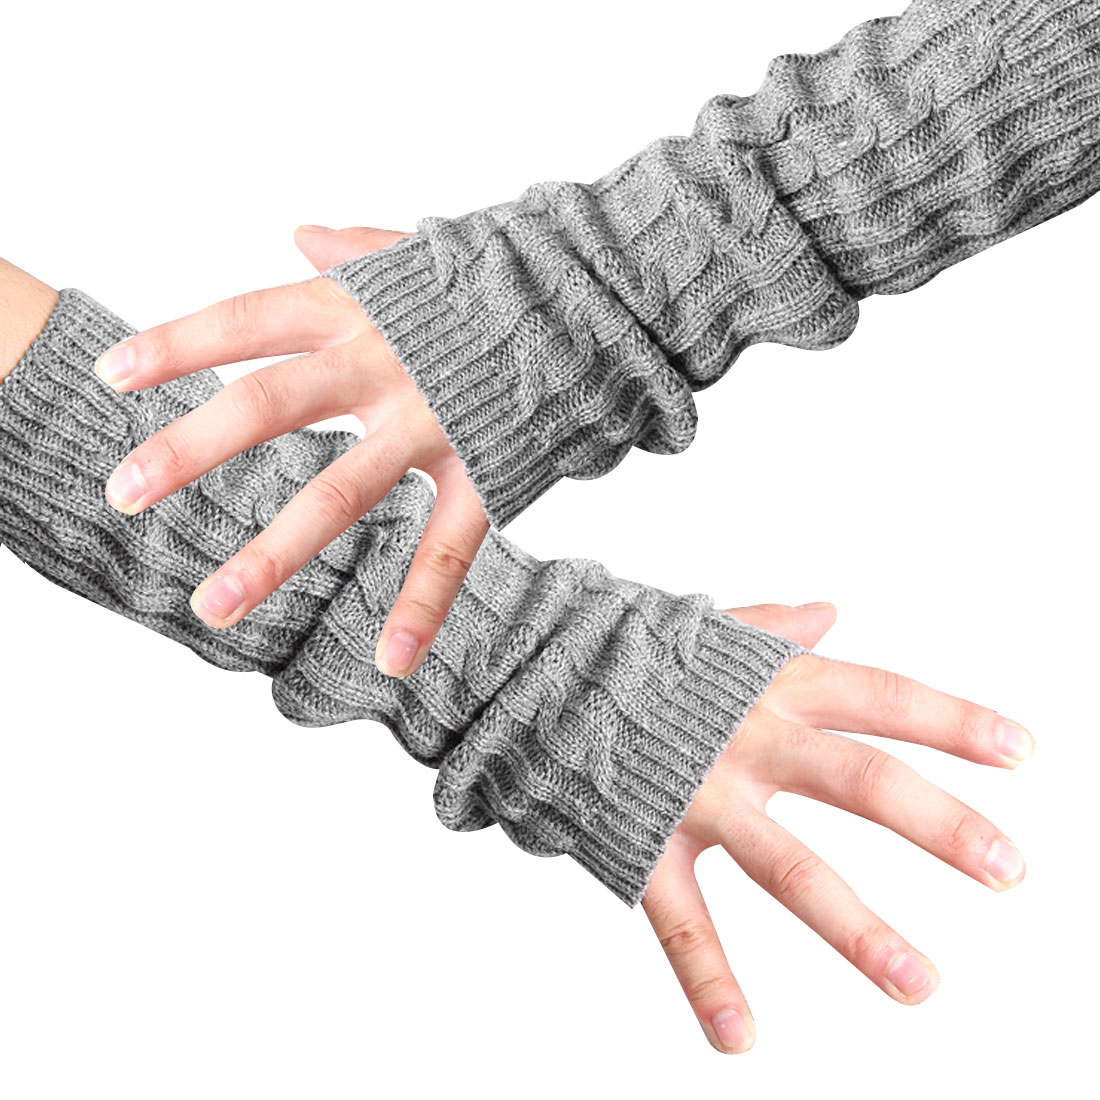 Unique Bargains Men's Stretchy Fingerless Knit Textured Design Warmers Gloves Gray